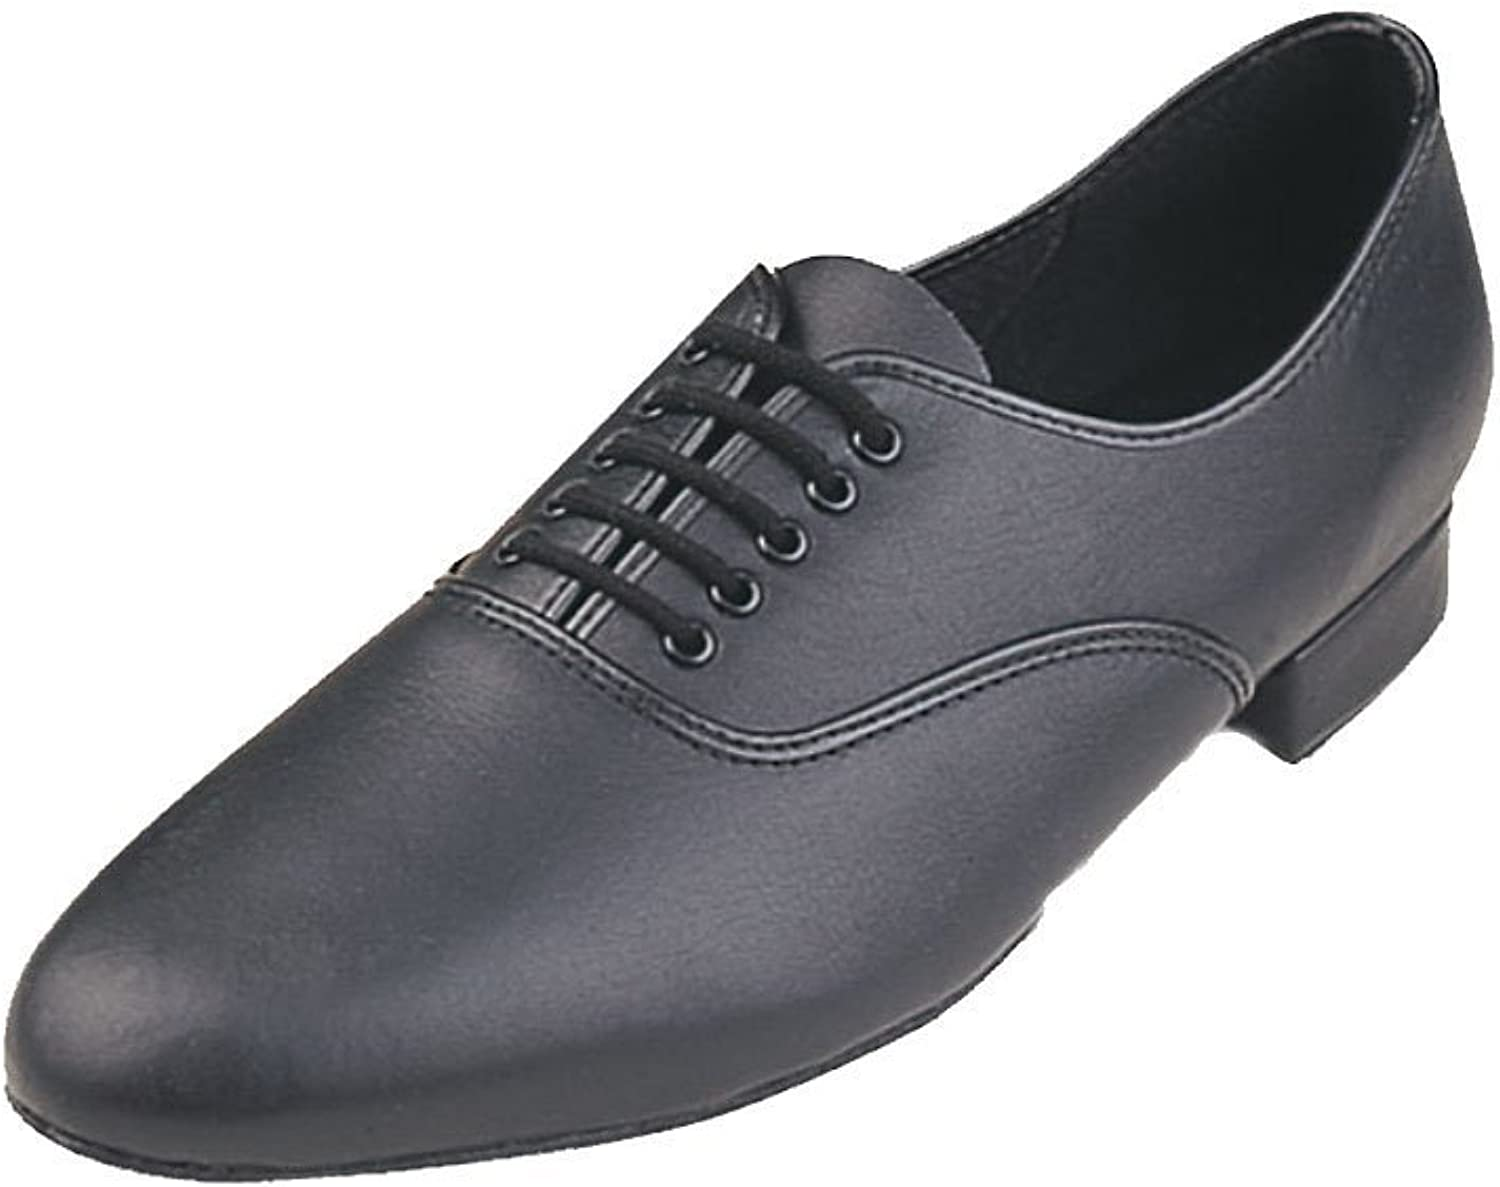 Roch Valley Leather Oxford 1  Heel Mens Ballroom shoes Black (Black, 11)